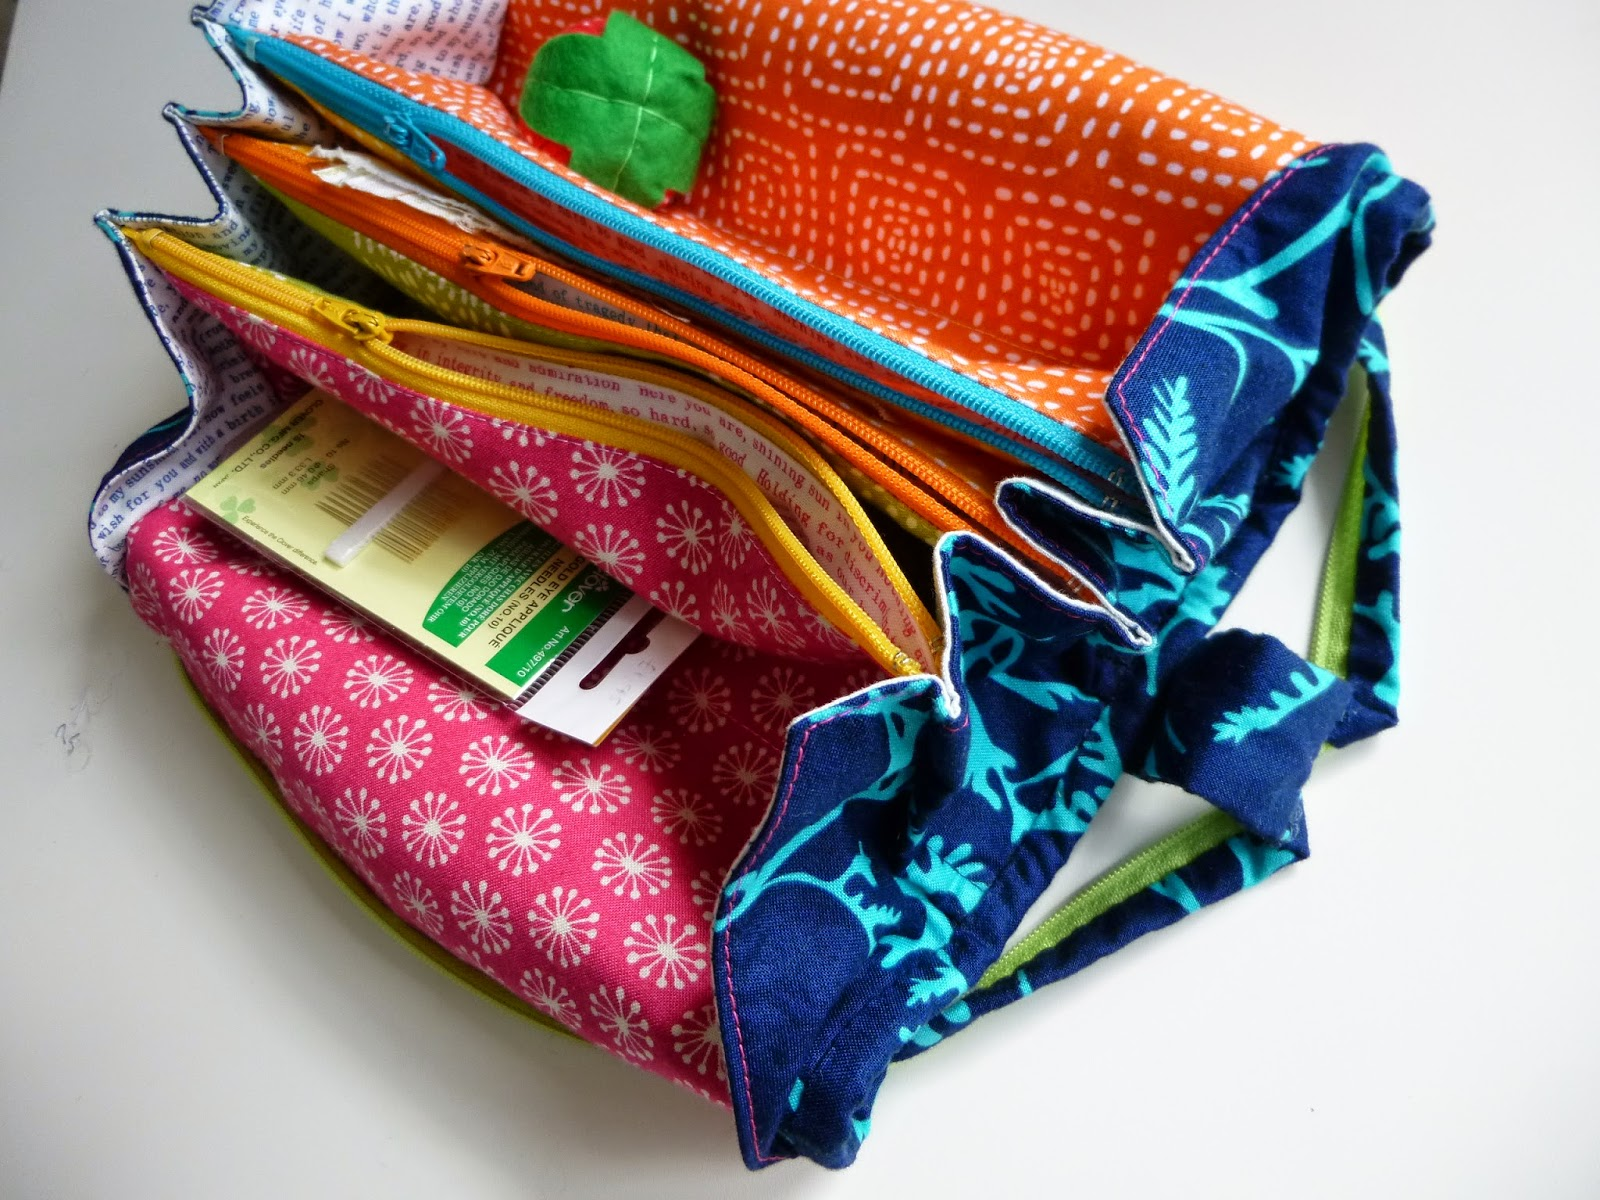 Tips on making the Sew Together Bag, Pattern by Sew Demented, made by fabricandflowers | Sonia Spence